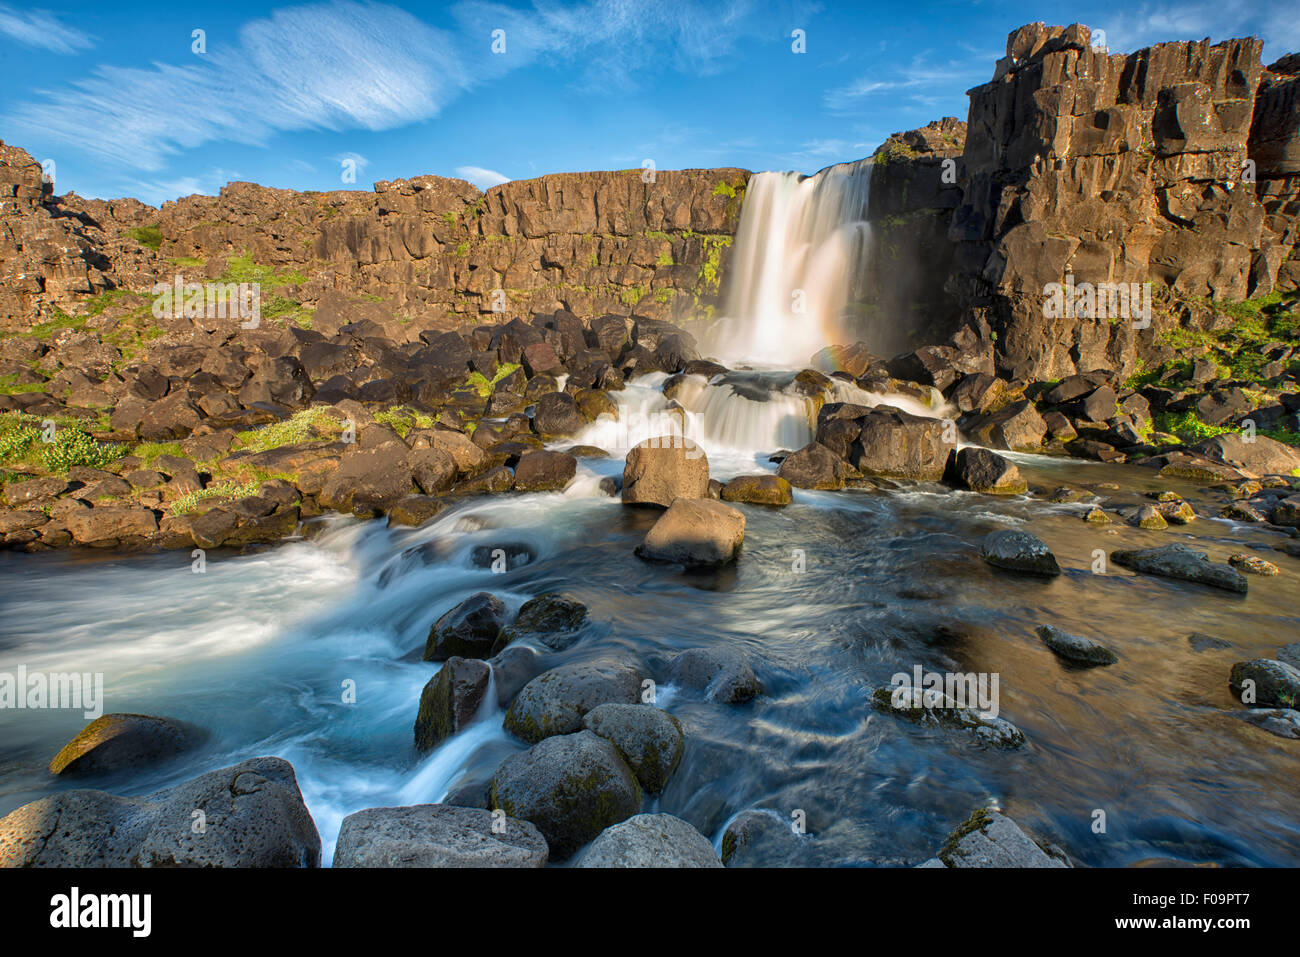 Oxararfoss Waterfall, Iceland - Stock Image